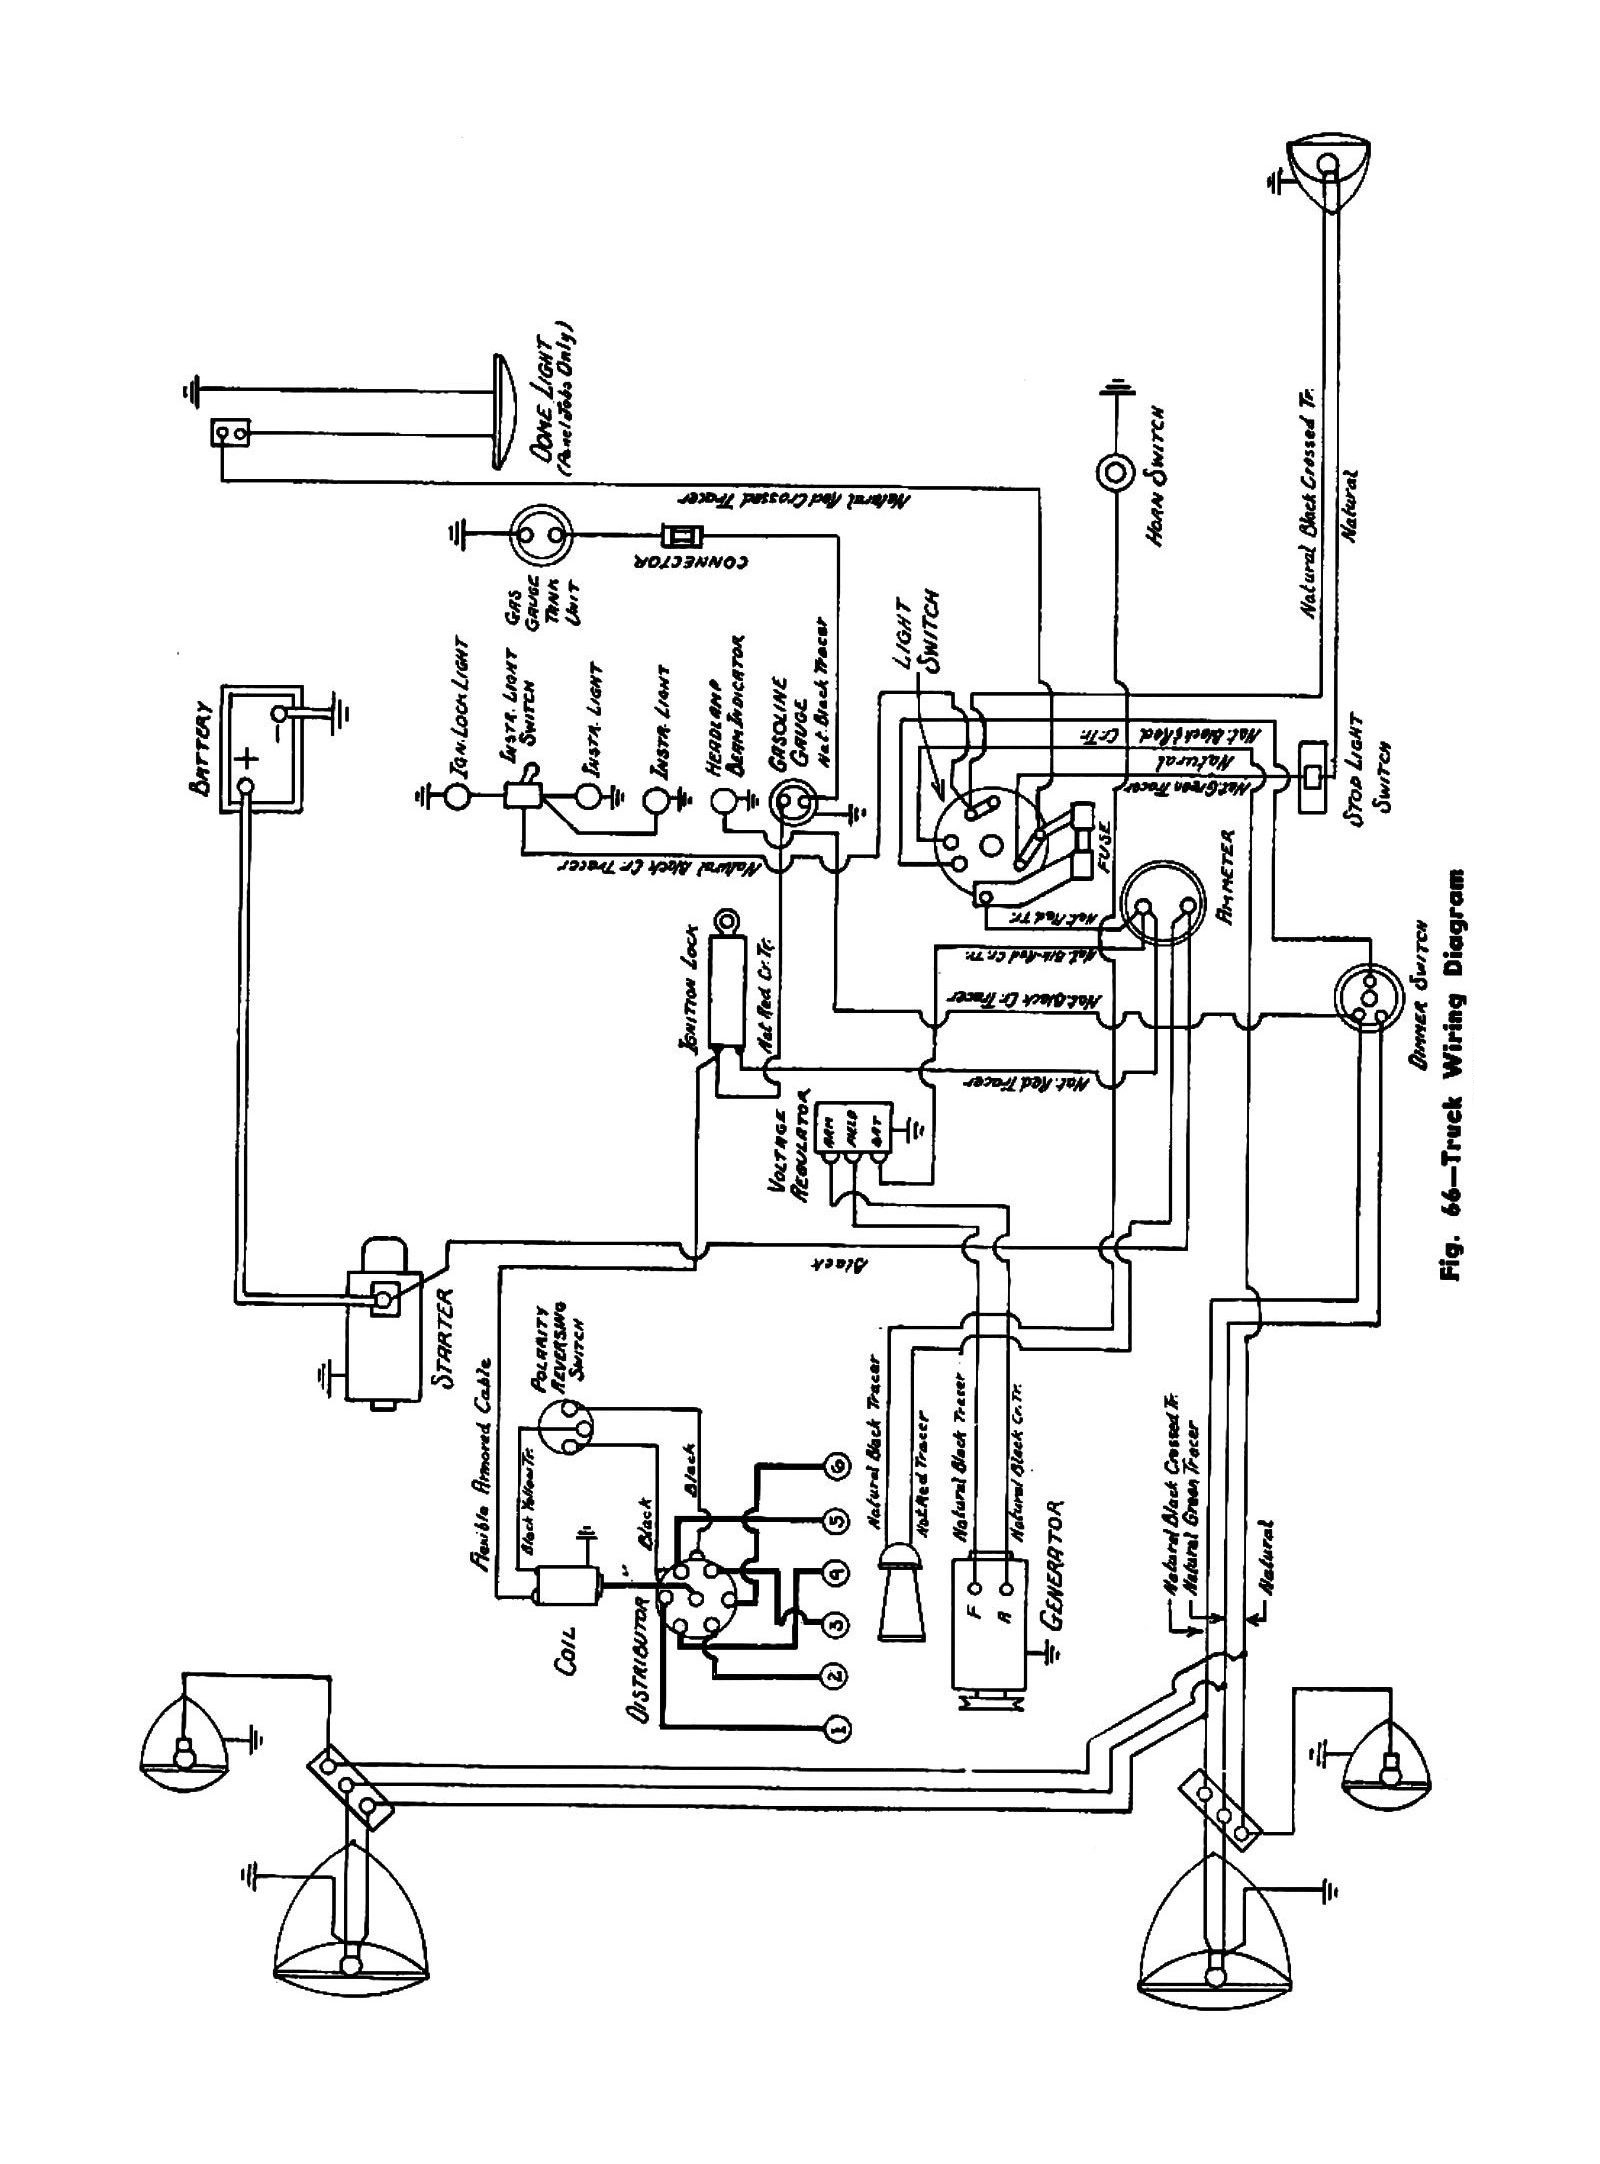 hight resolution of 47 international trucks wiring diagram wiring diagram data oreo 47 international trucks wiring diagram